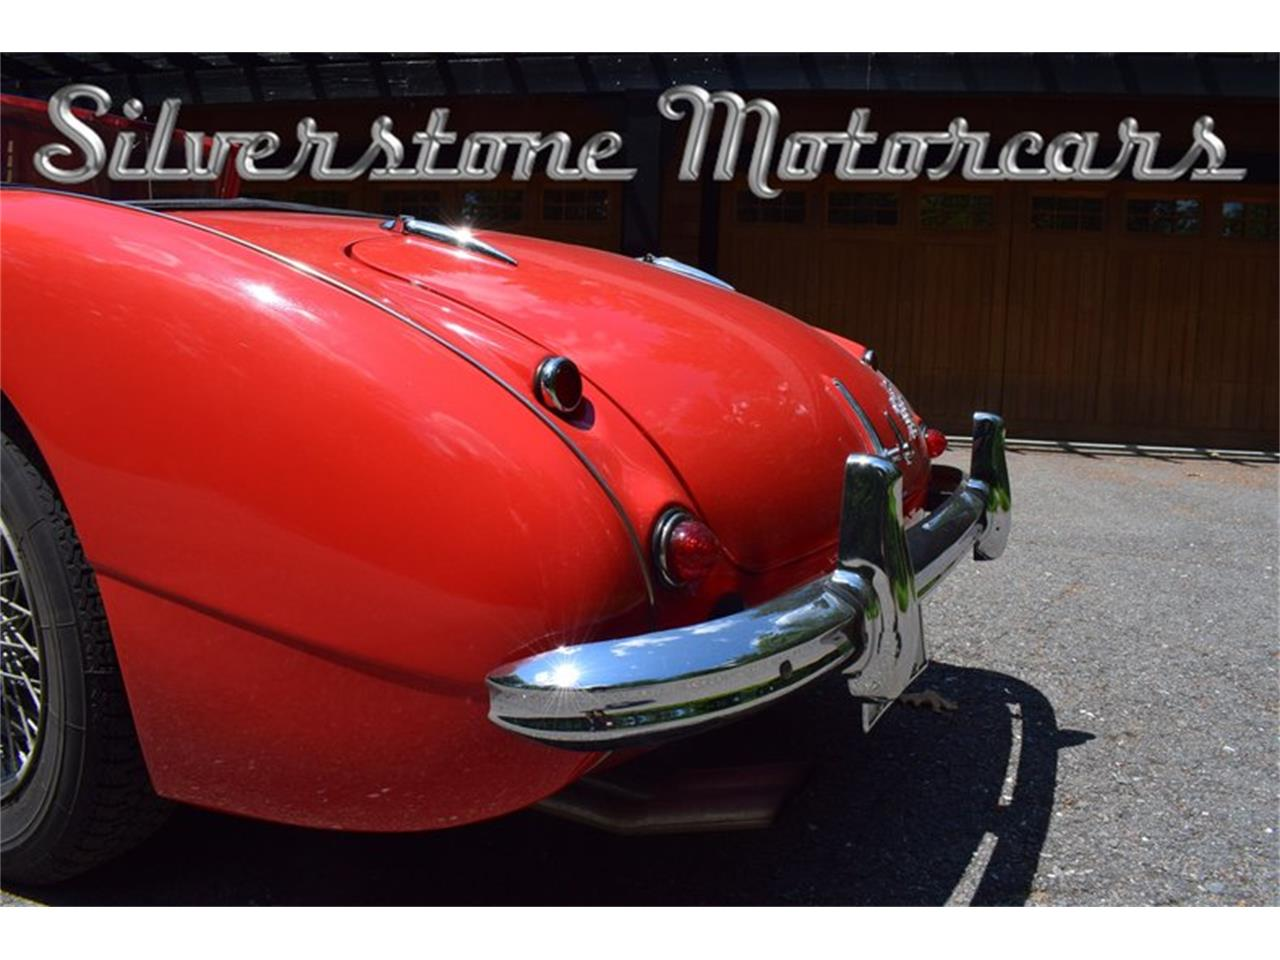 Large Picture of Classic 1961 Austin-Healey 3000 Offered by Silverstone Motorcars - NP0V